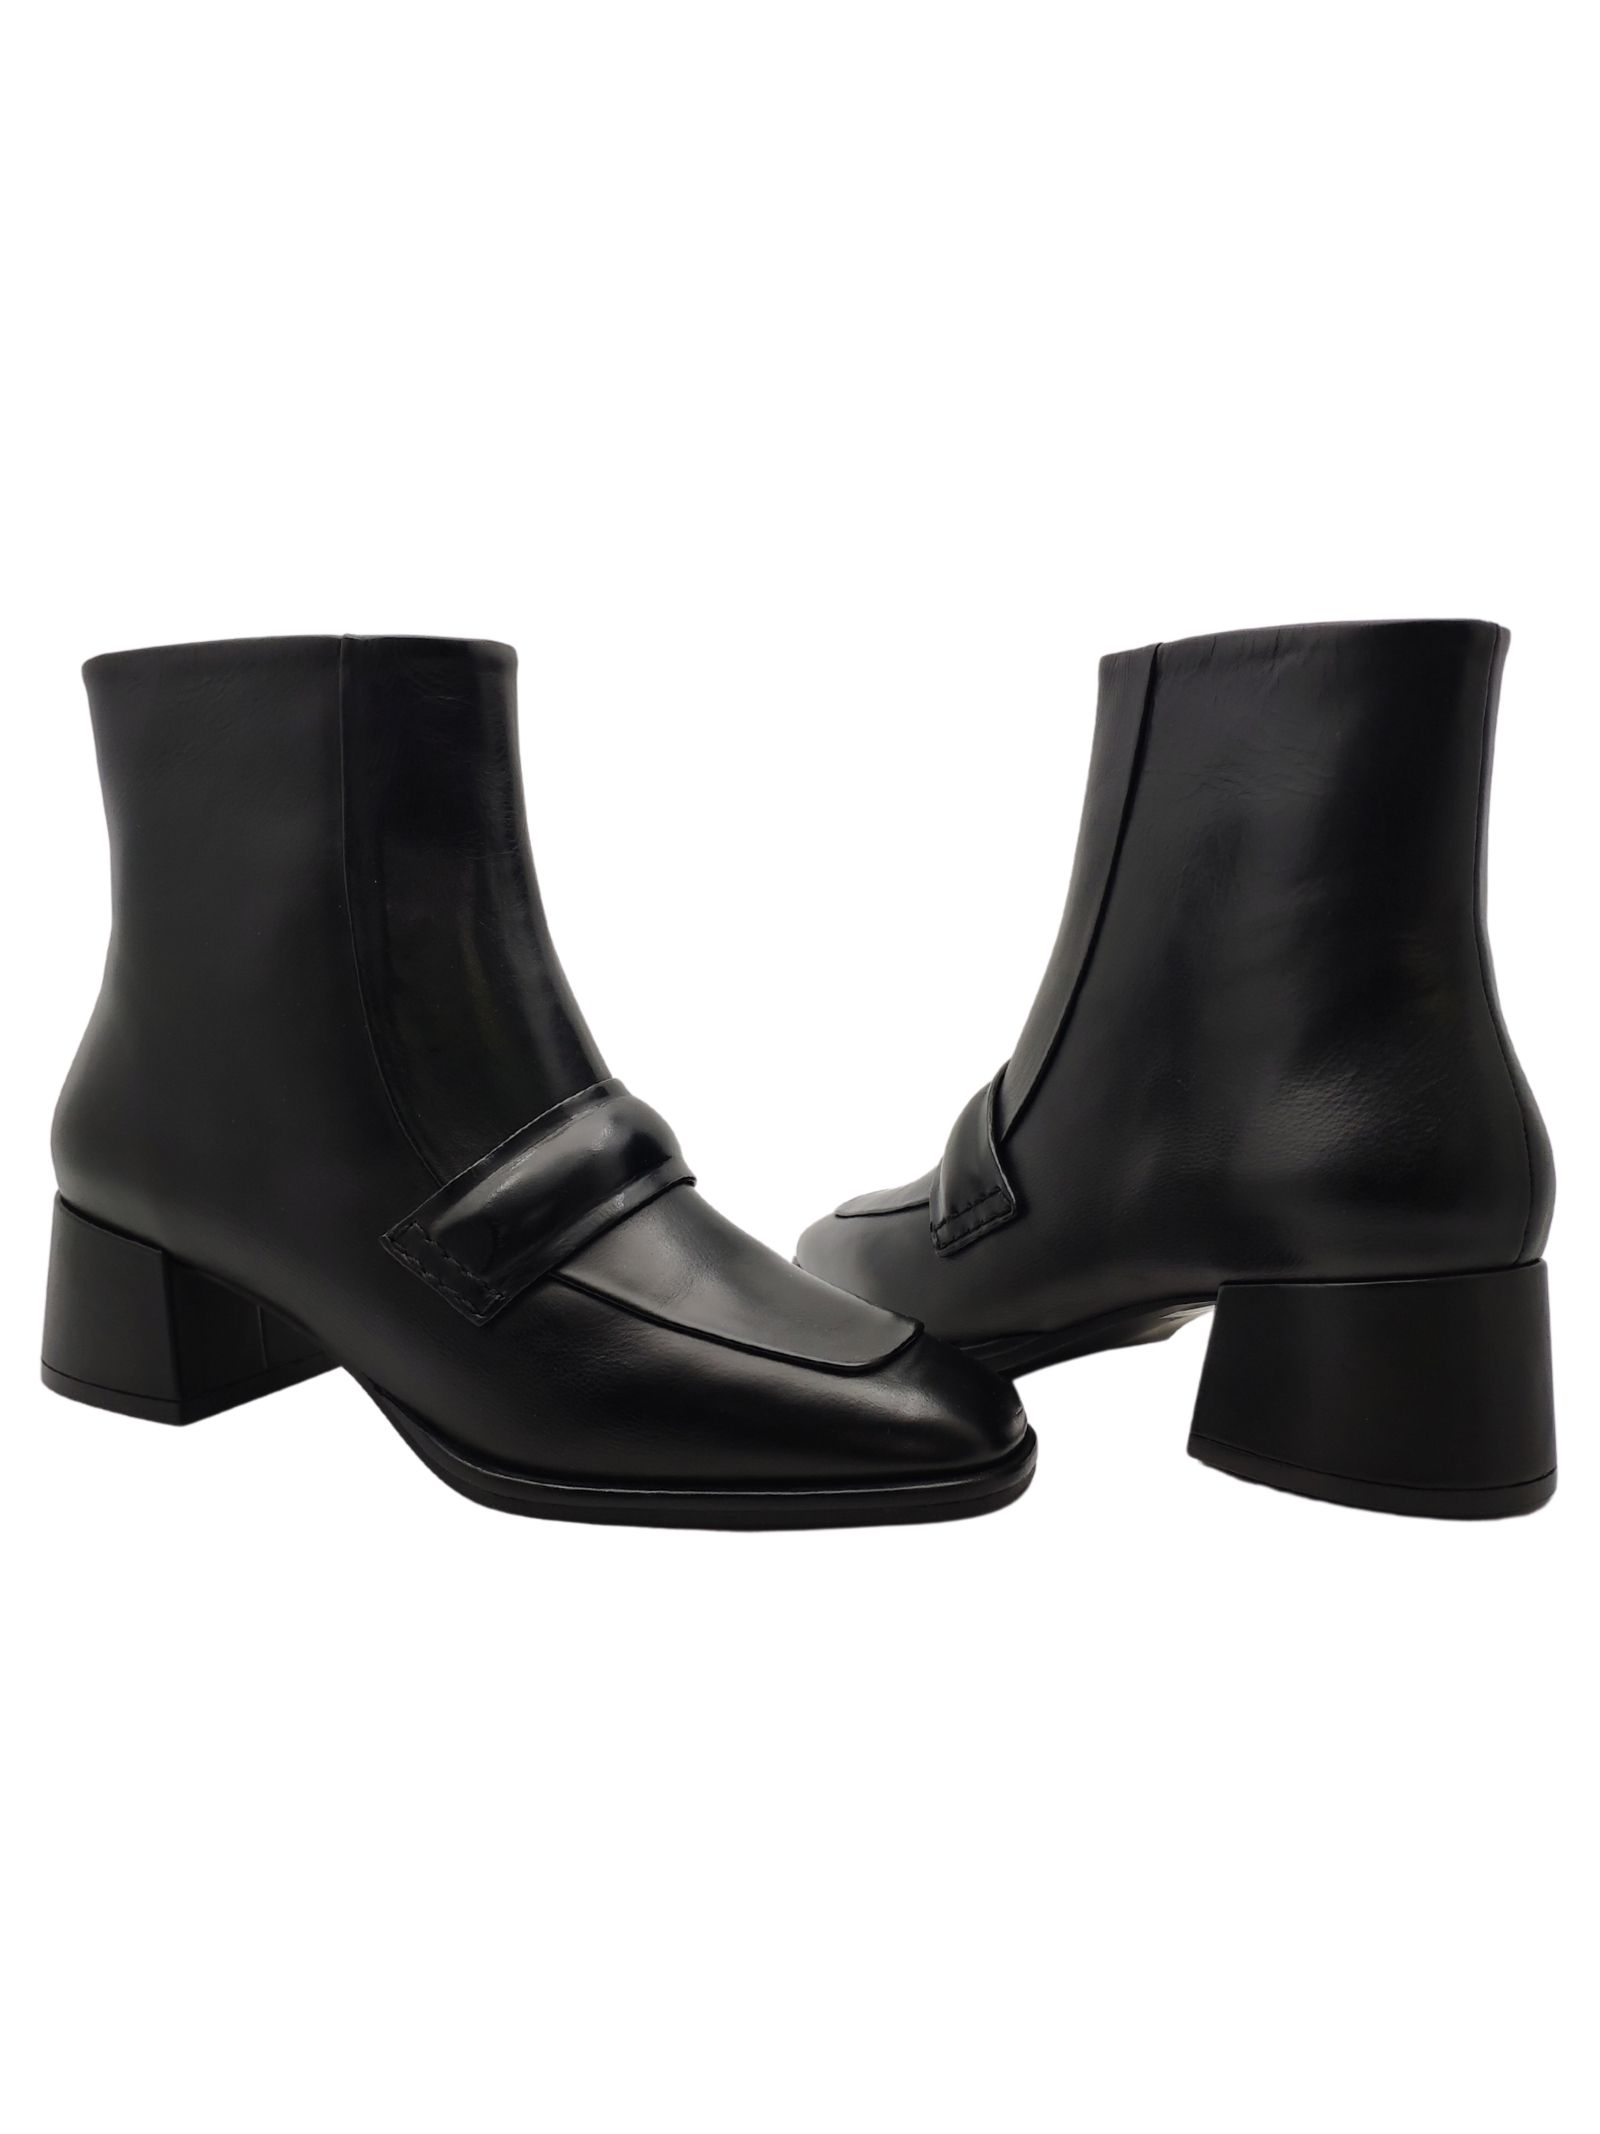 Women's ankle boots Bruno Premi | Ankle Boots | BA3102XNERO